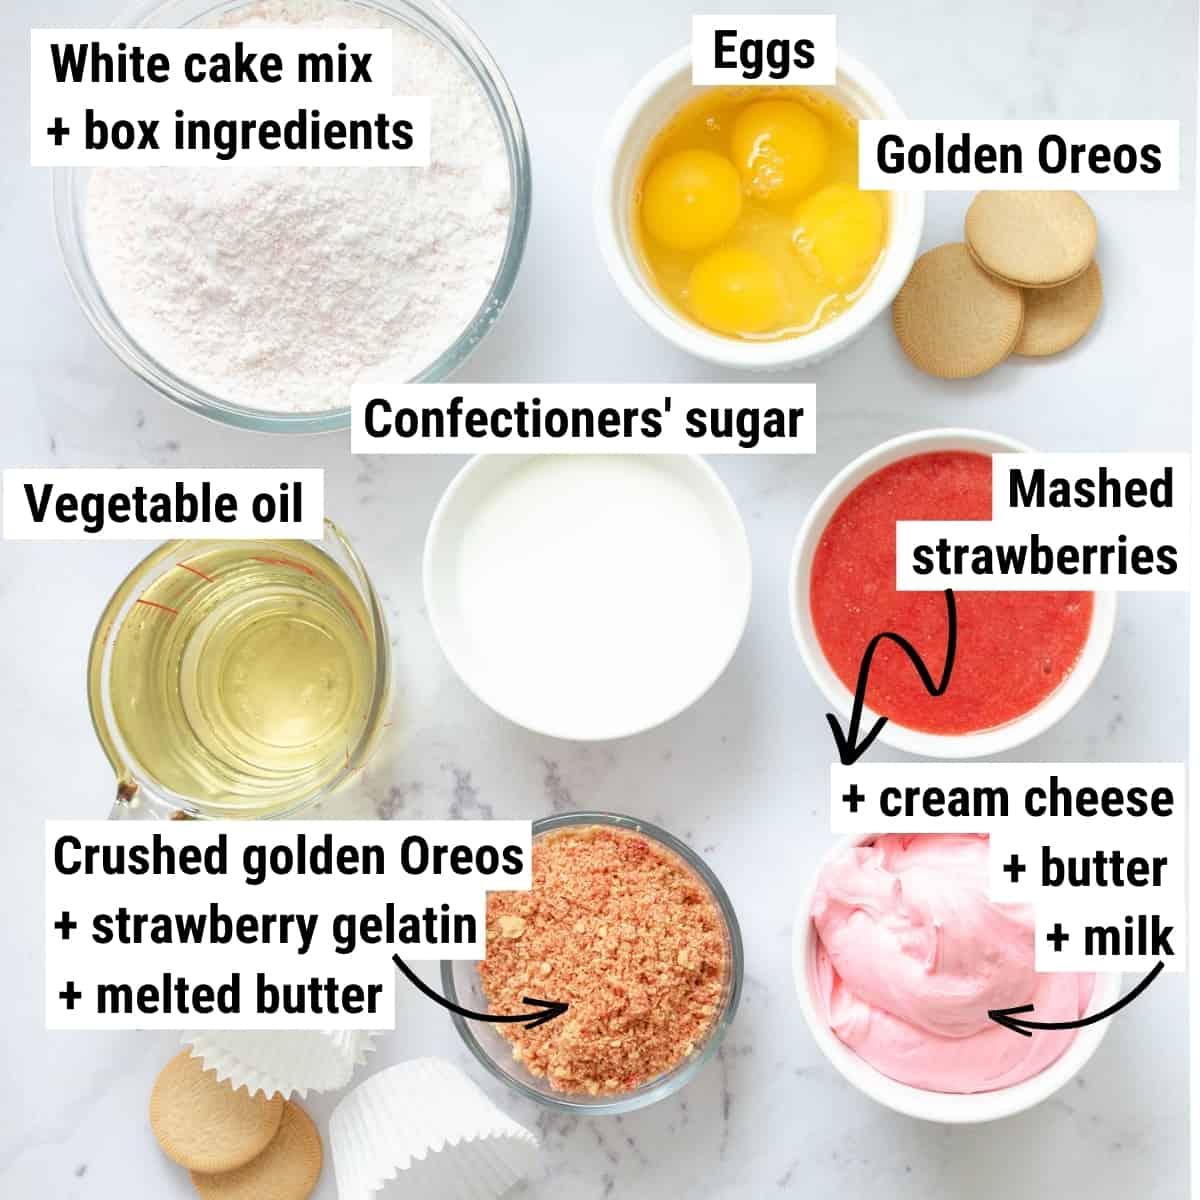 The ingredients to make strawberry crunch cupcakes.